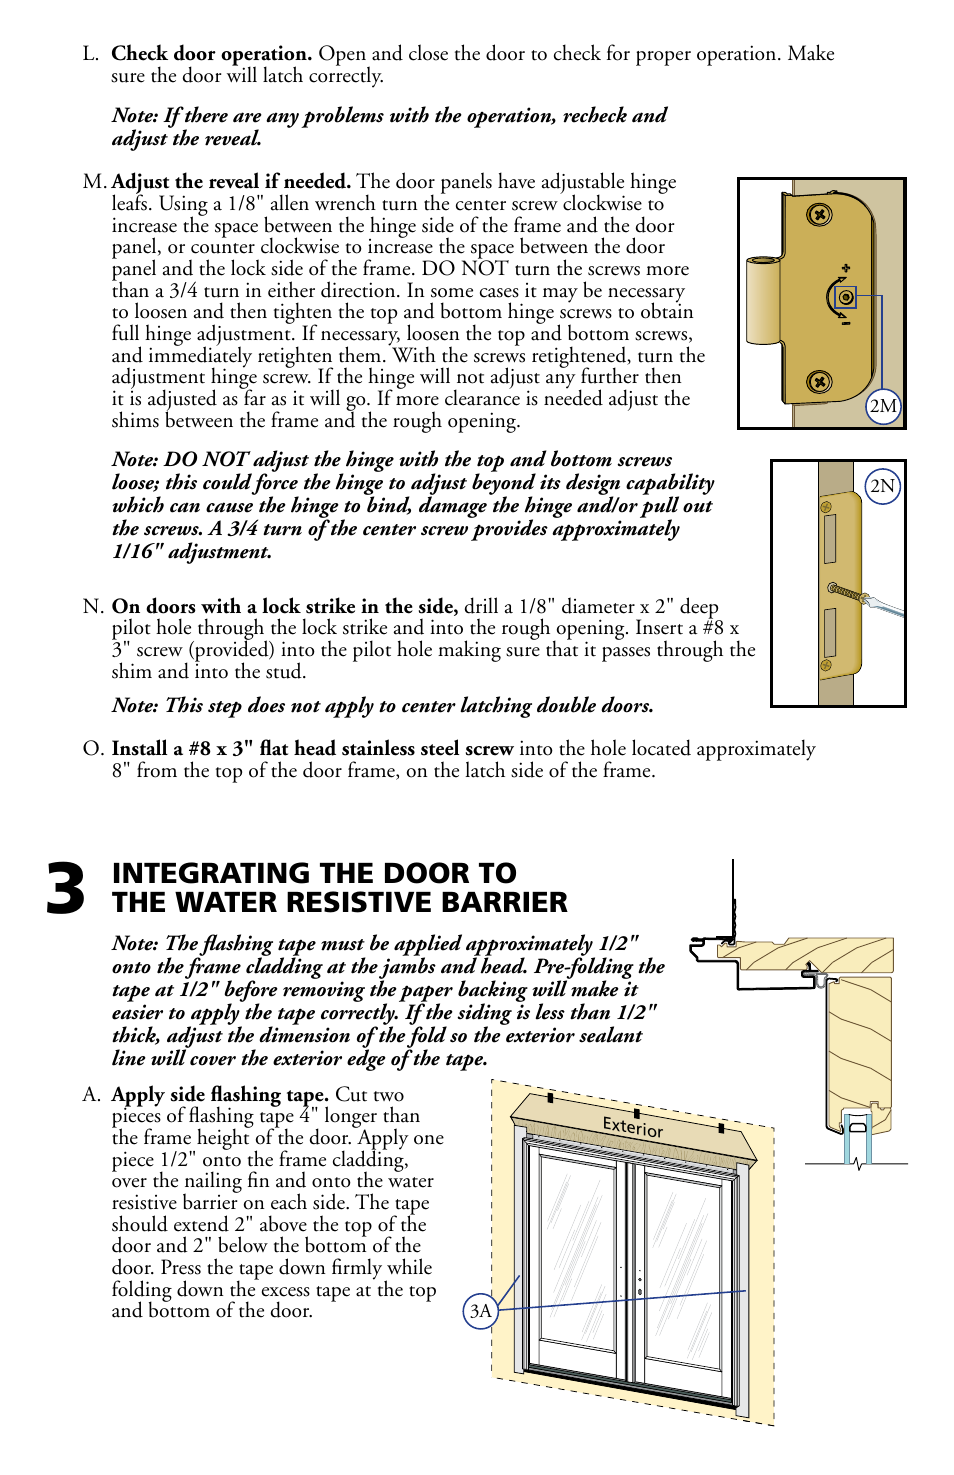 Pella clad hinged patio door with adjustable hinges 80jj0103 user pella clad hinged patio door with adjustable hinges 80jj0103 user manual page 5 8 planetlyrics Gallery